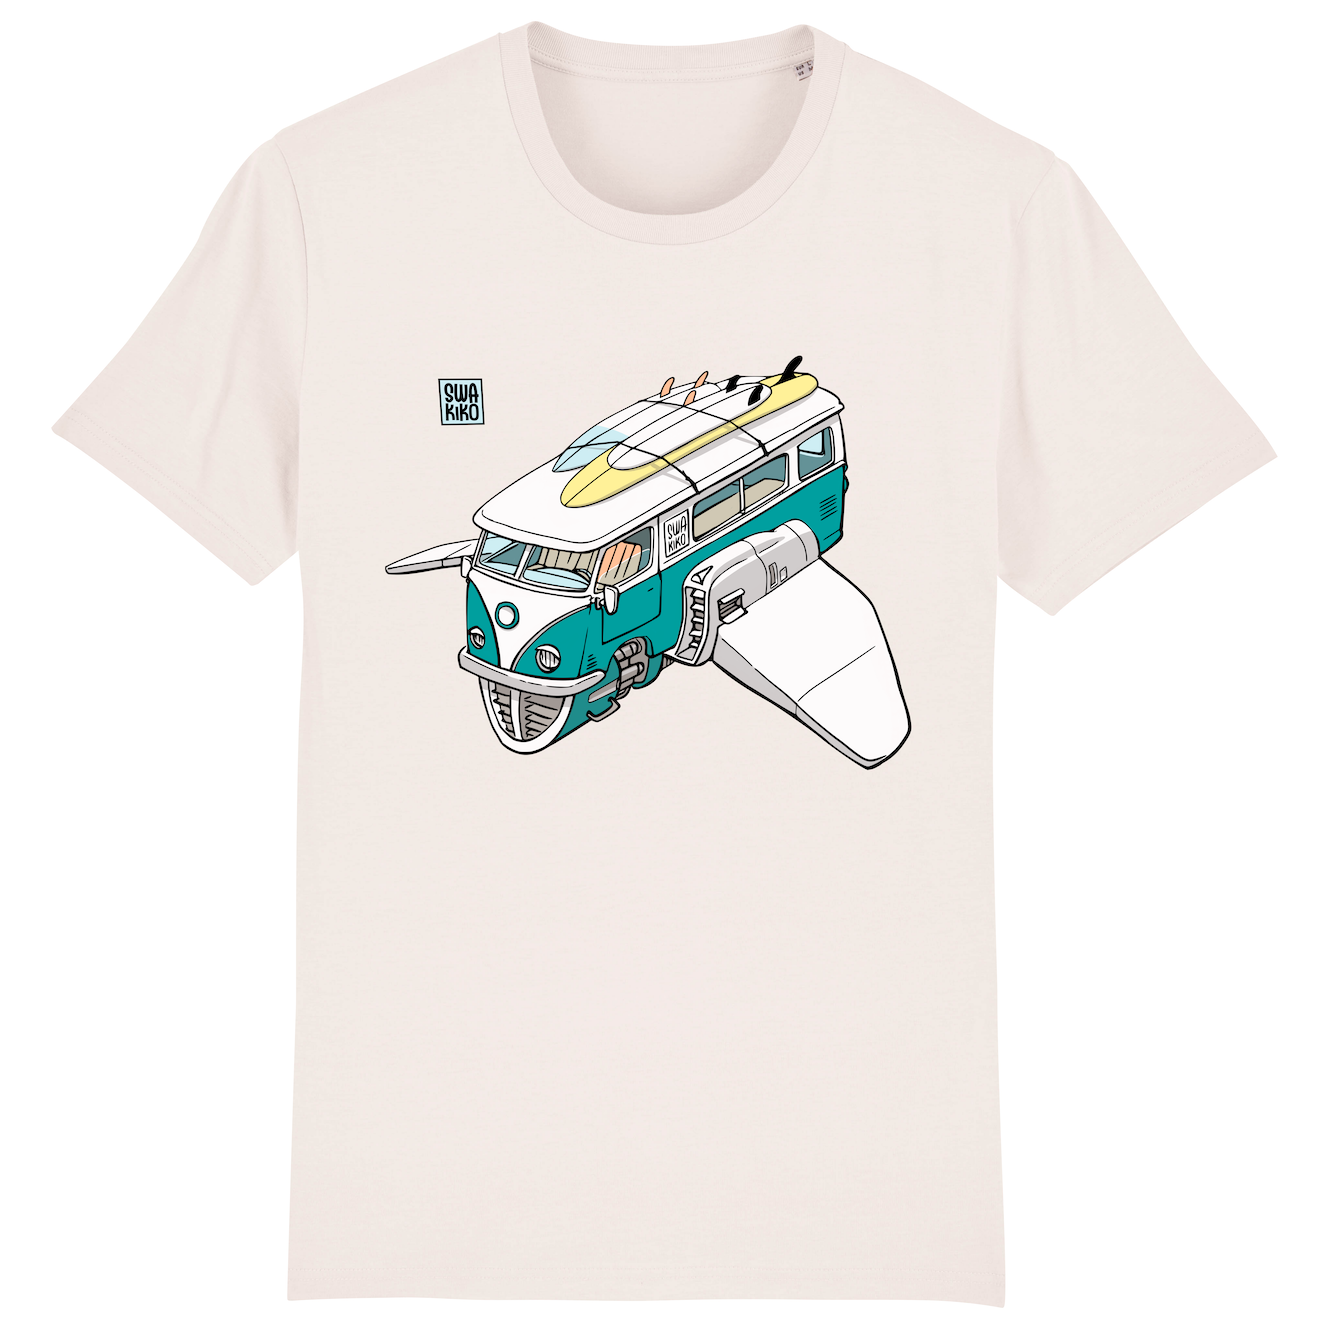 Surf t-shirt men white, Volkswagon Surfship